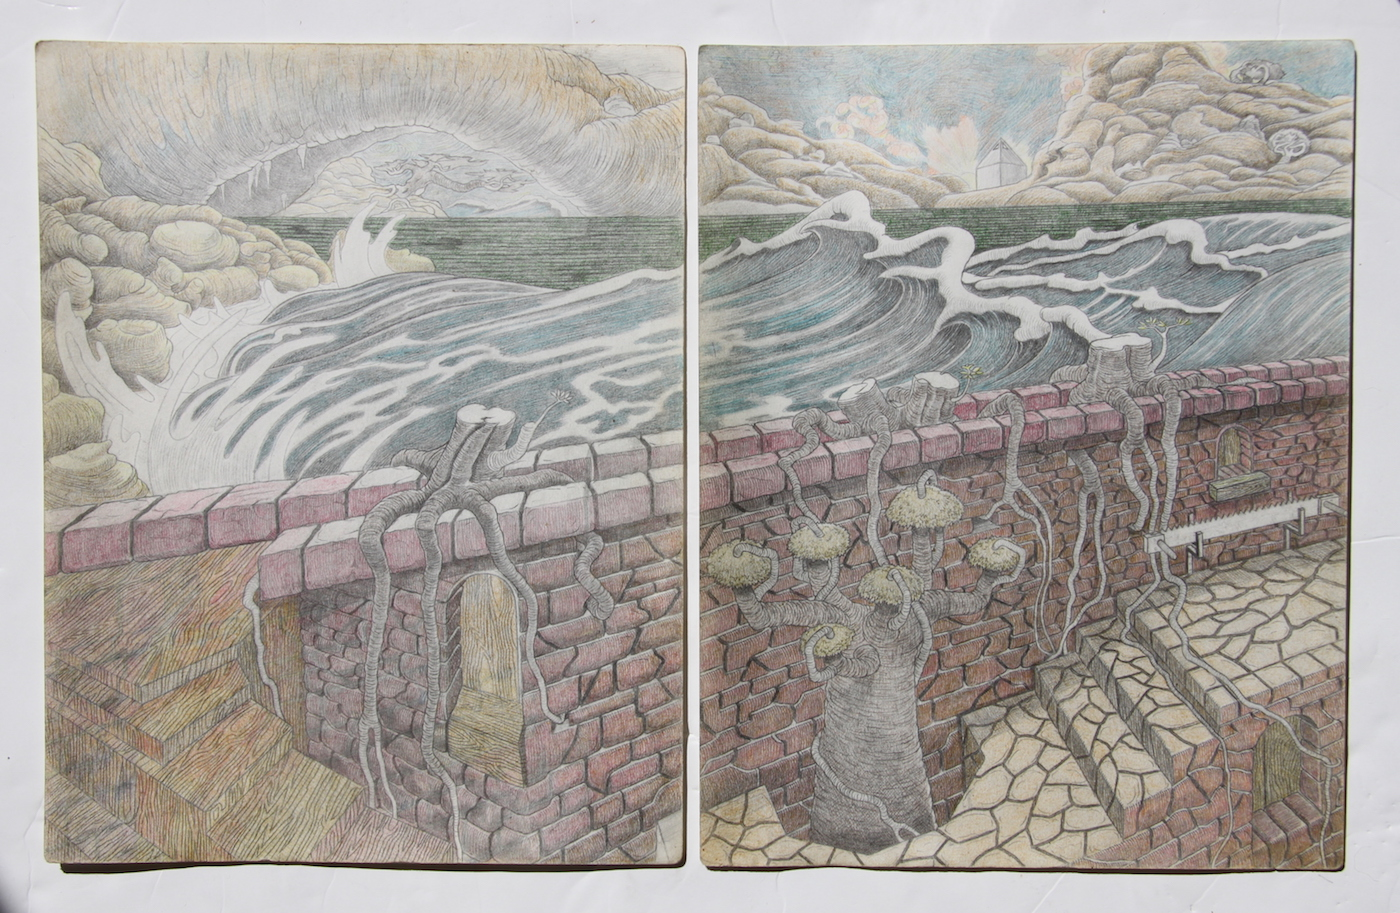 untitled-2014-pencil-crayon-11-x-14-in-each-panel